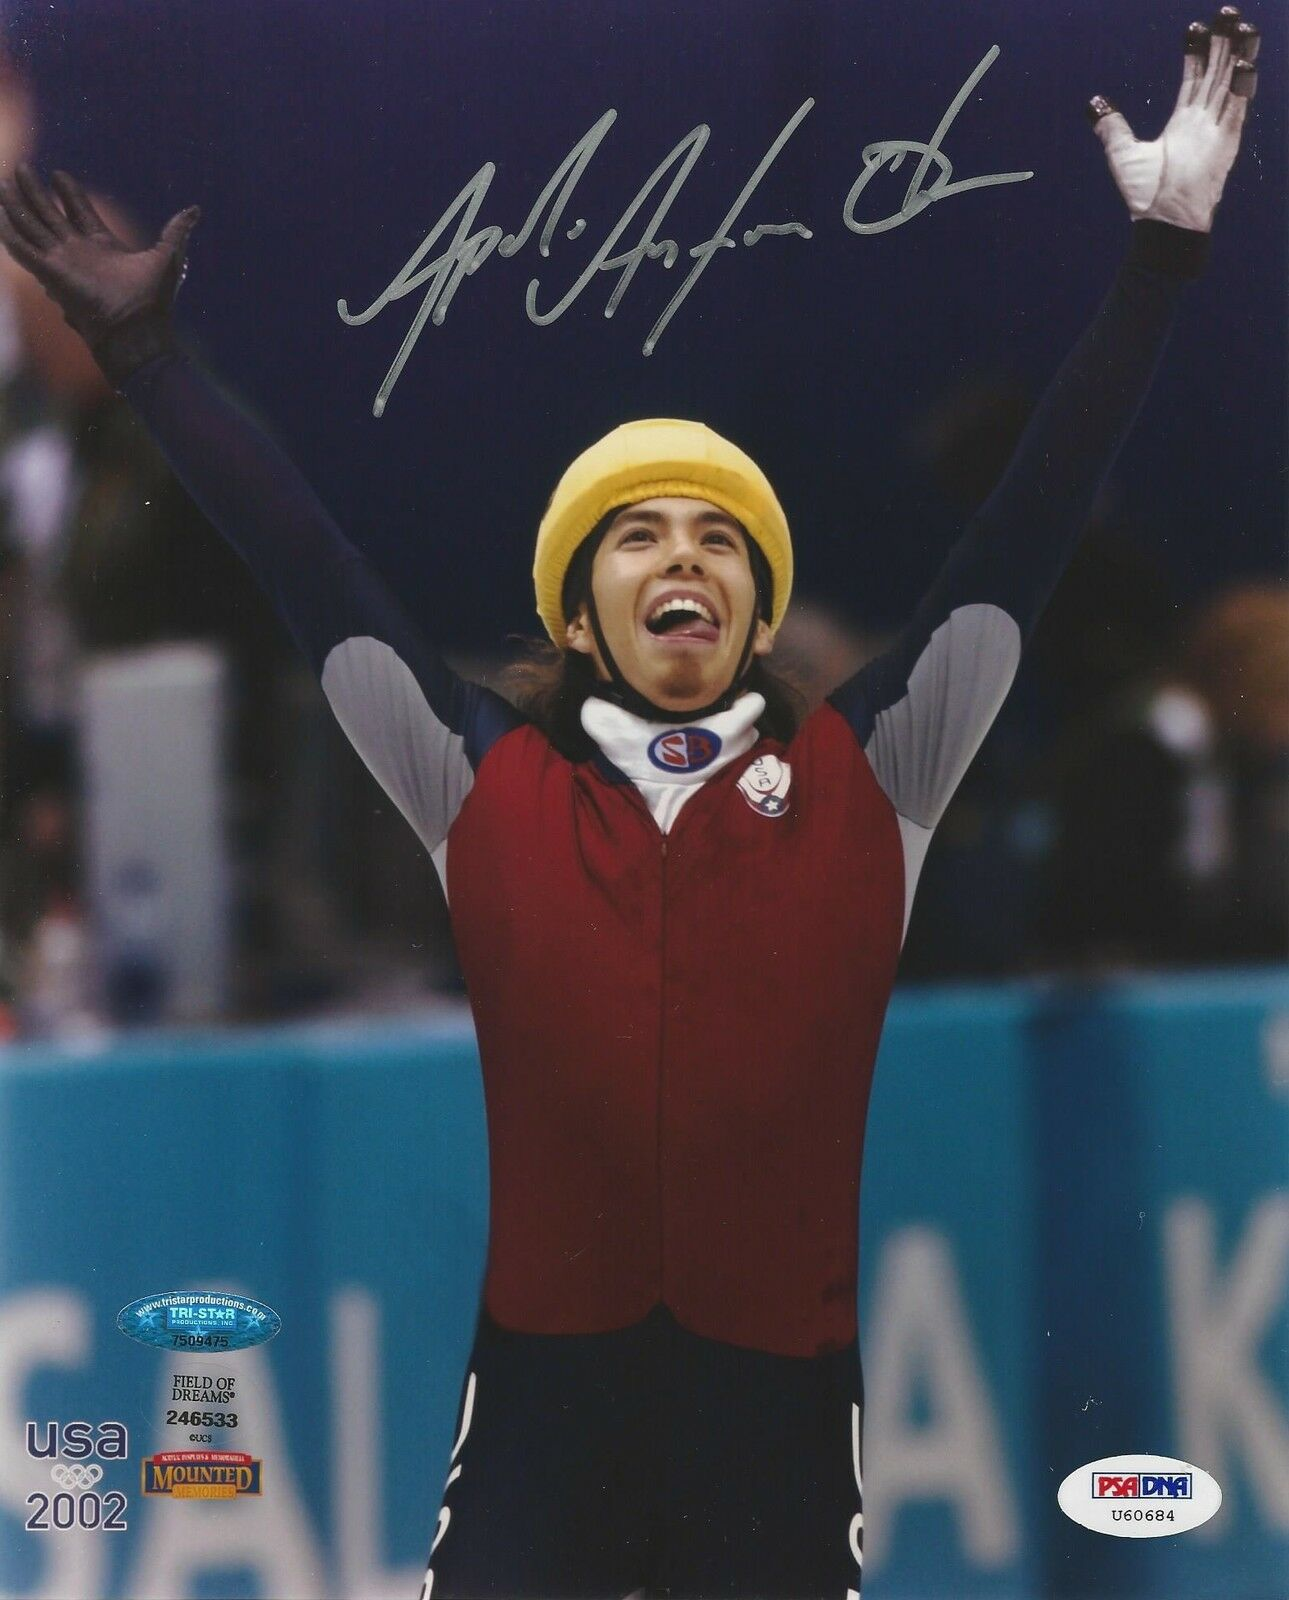 Apolo Ohno Speed Skater signed 8x10 photo PSA/DNA Certification # U60684